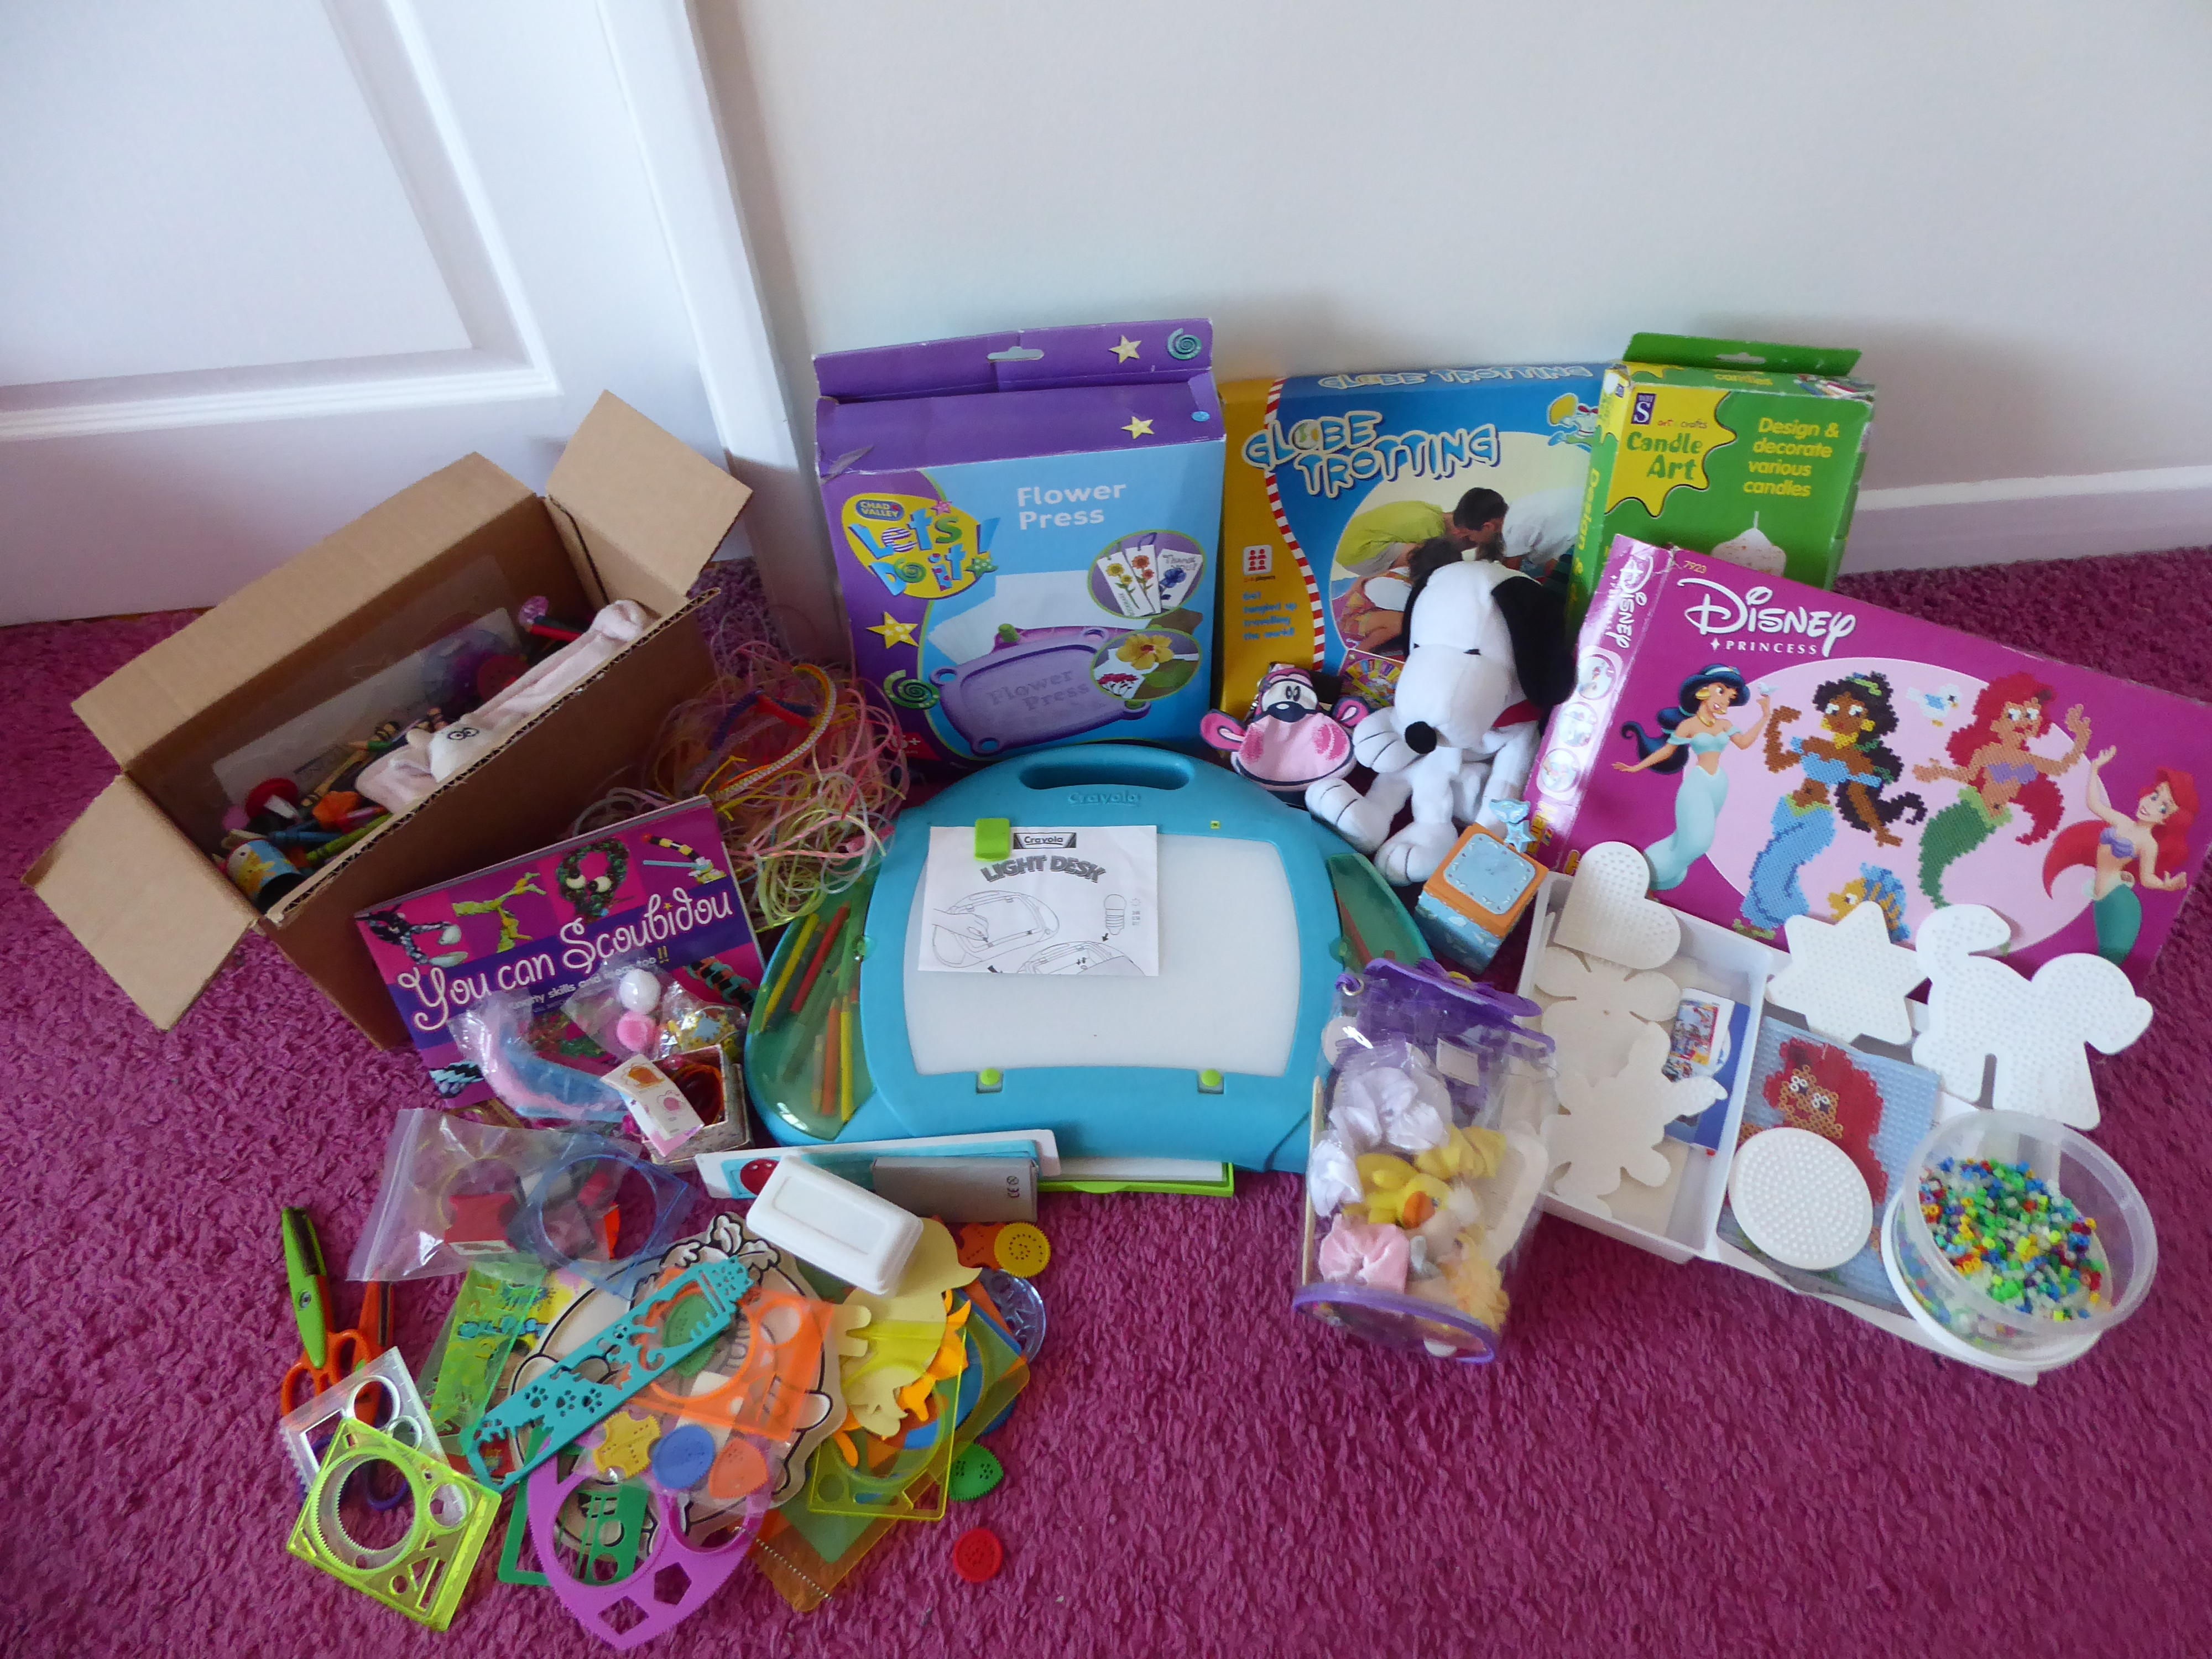 Bundle of arts and crafts toys, games, hama beads, bags etc